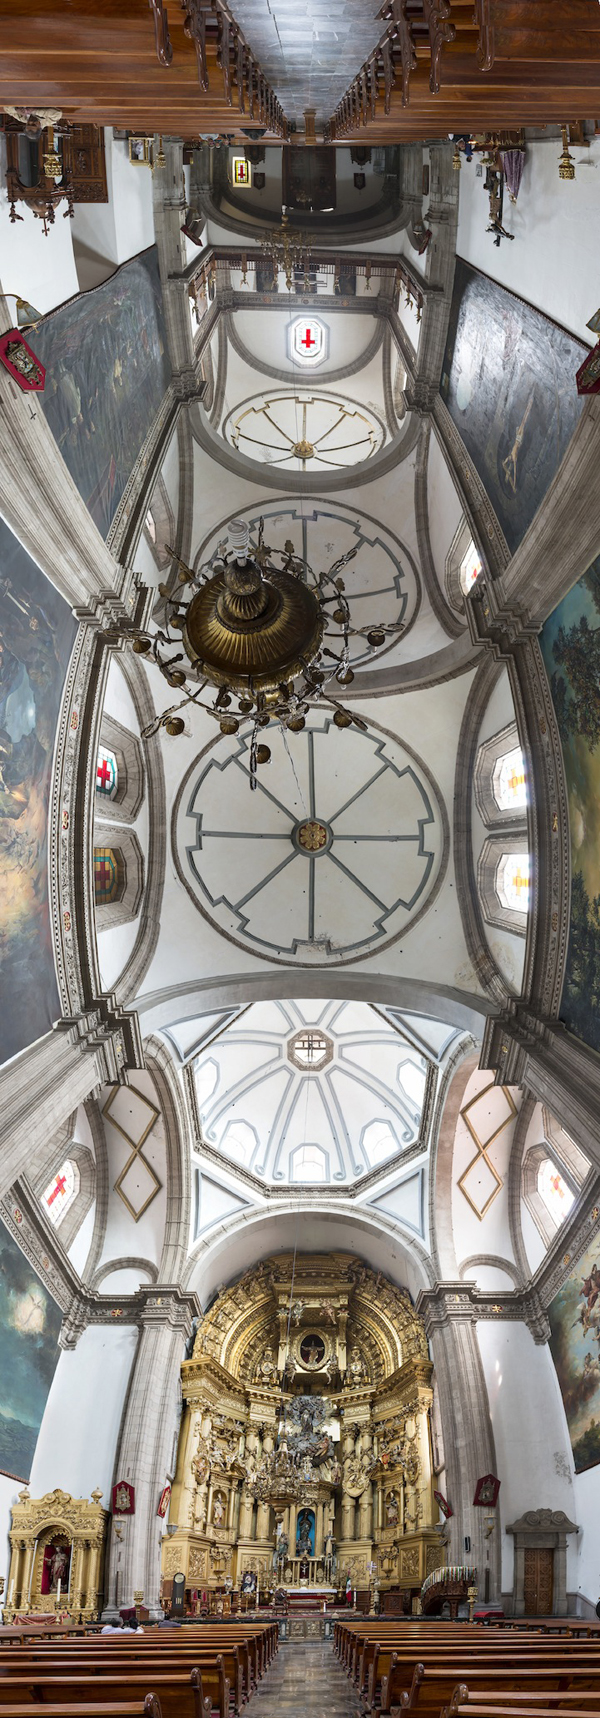 Vertical Panoramas of Churches by Richard Silver